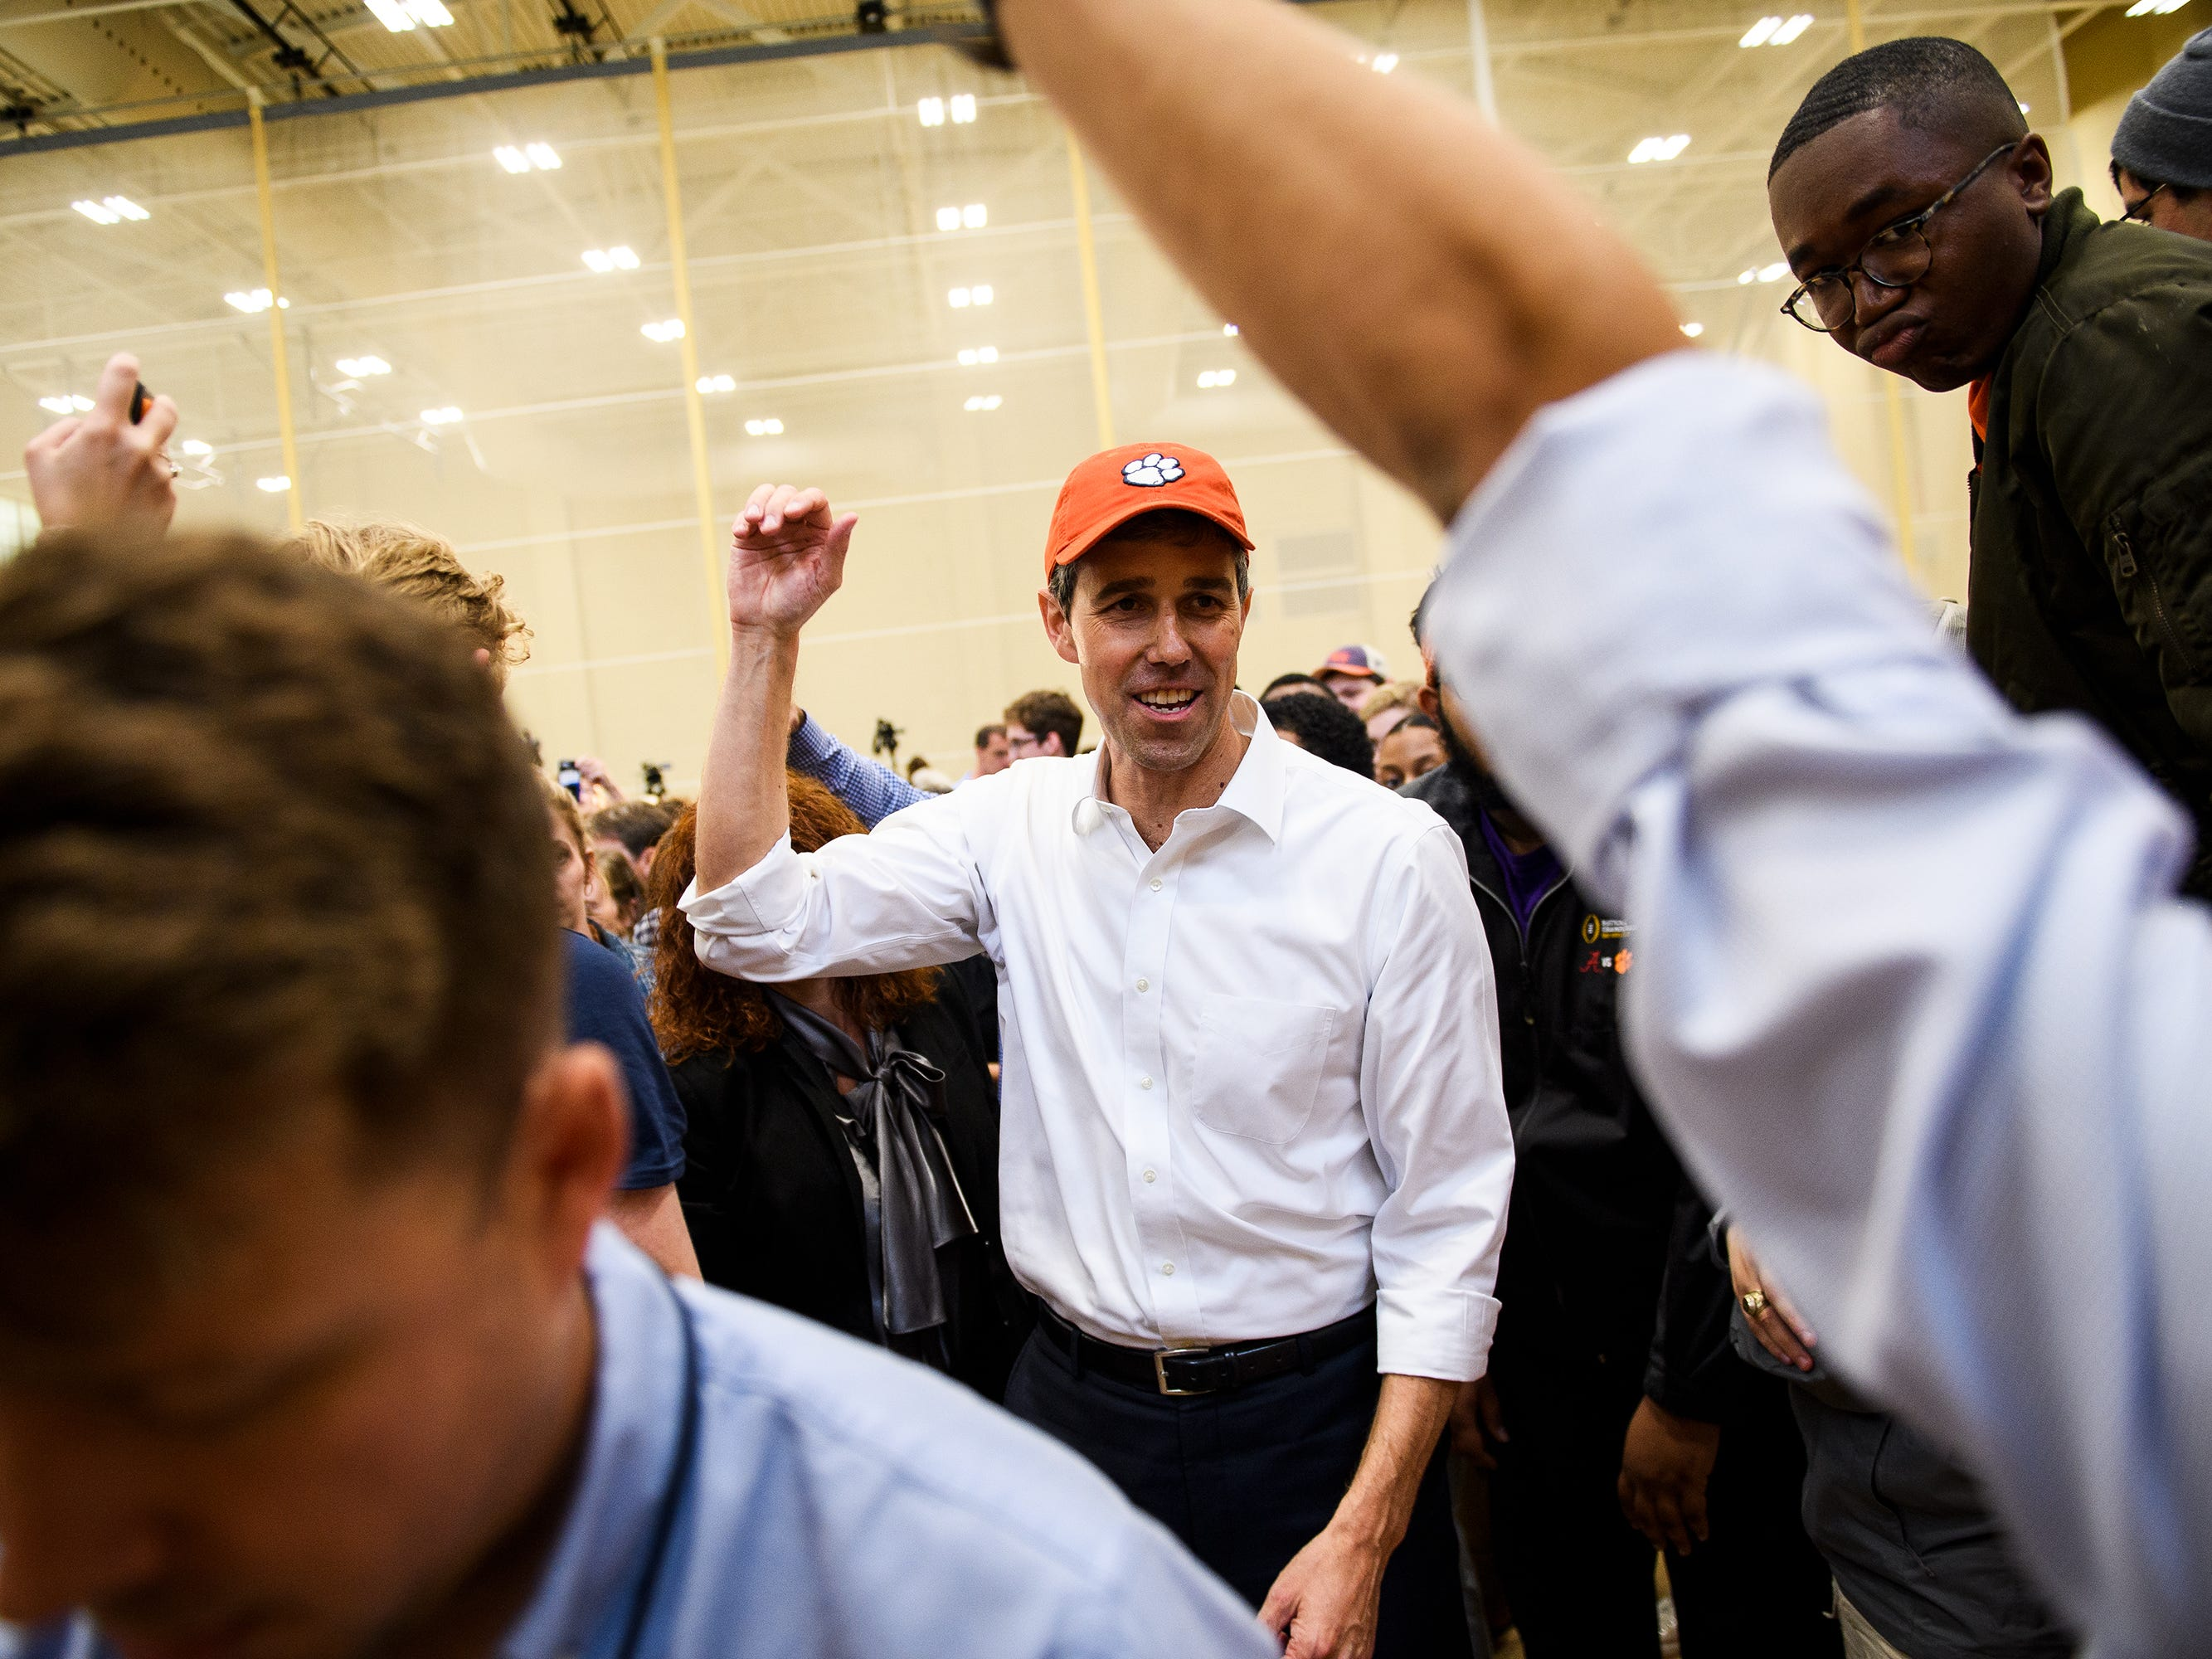 Democratic presidential hopeful Beto O'Rourke walks off the stage during his rally at Clemson University's Five Recreation Center Sunday, April 14, 2019.